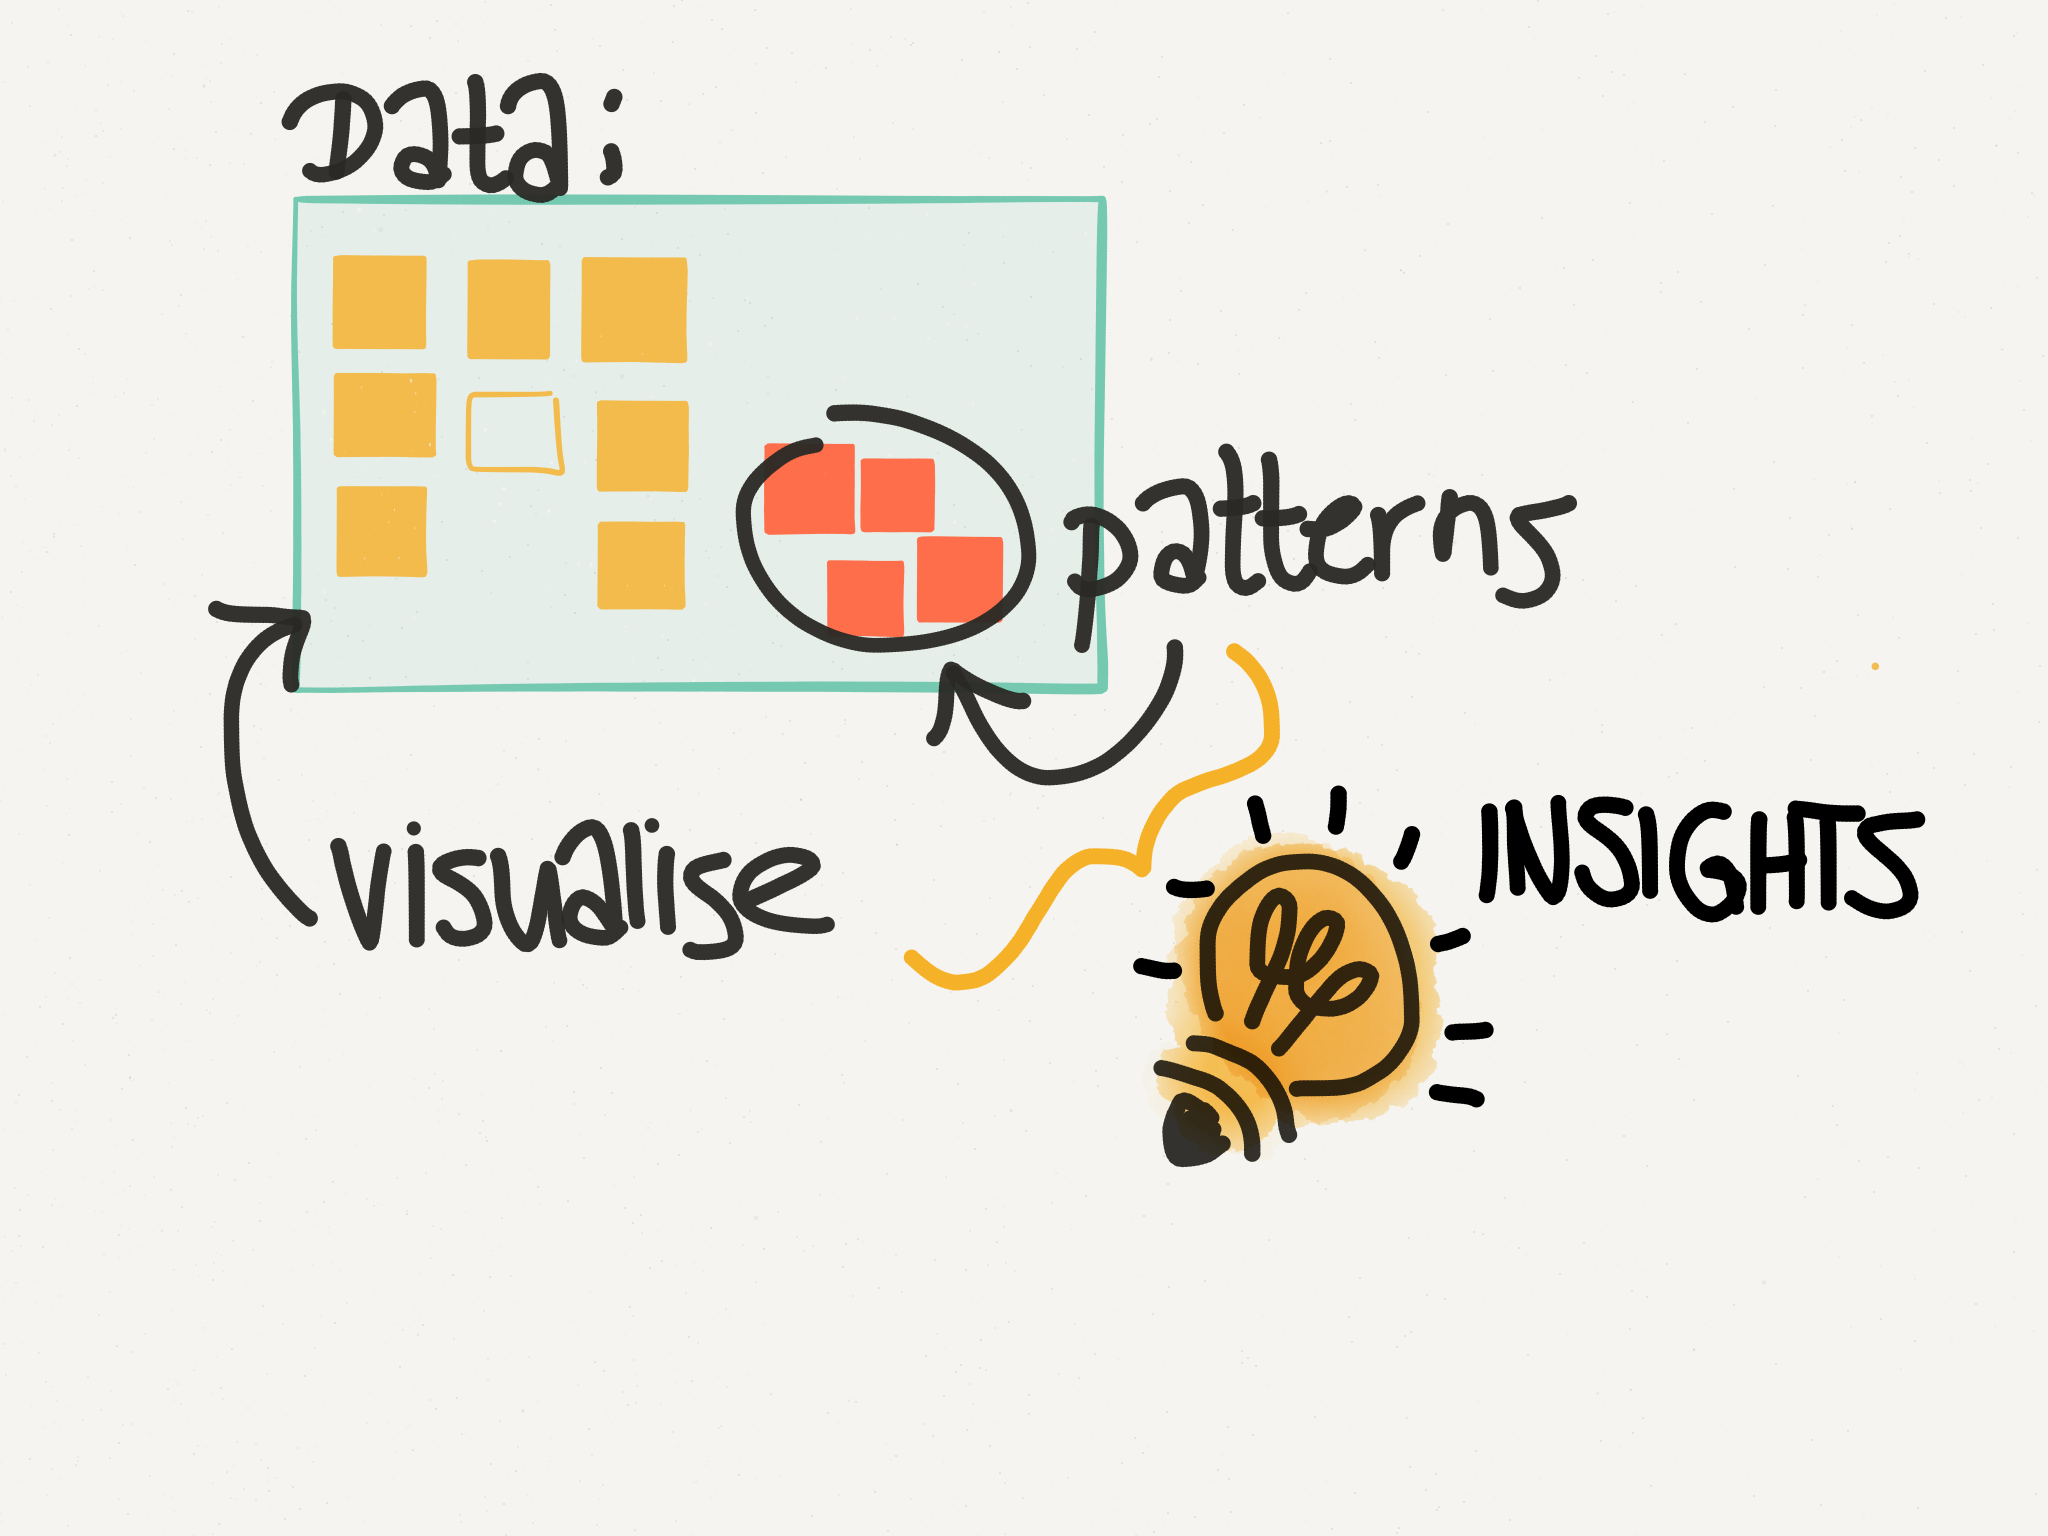 Visualise; You are looking for insights